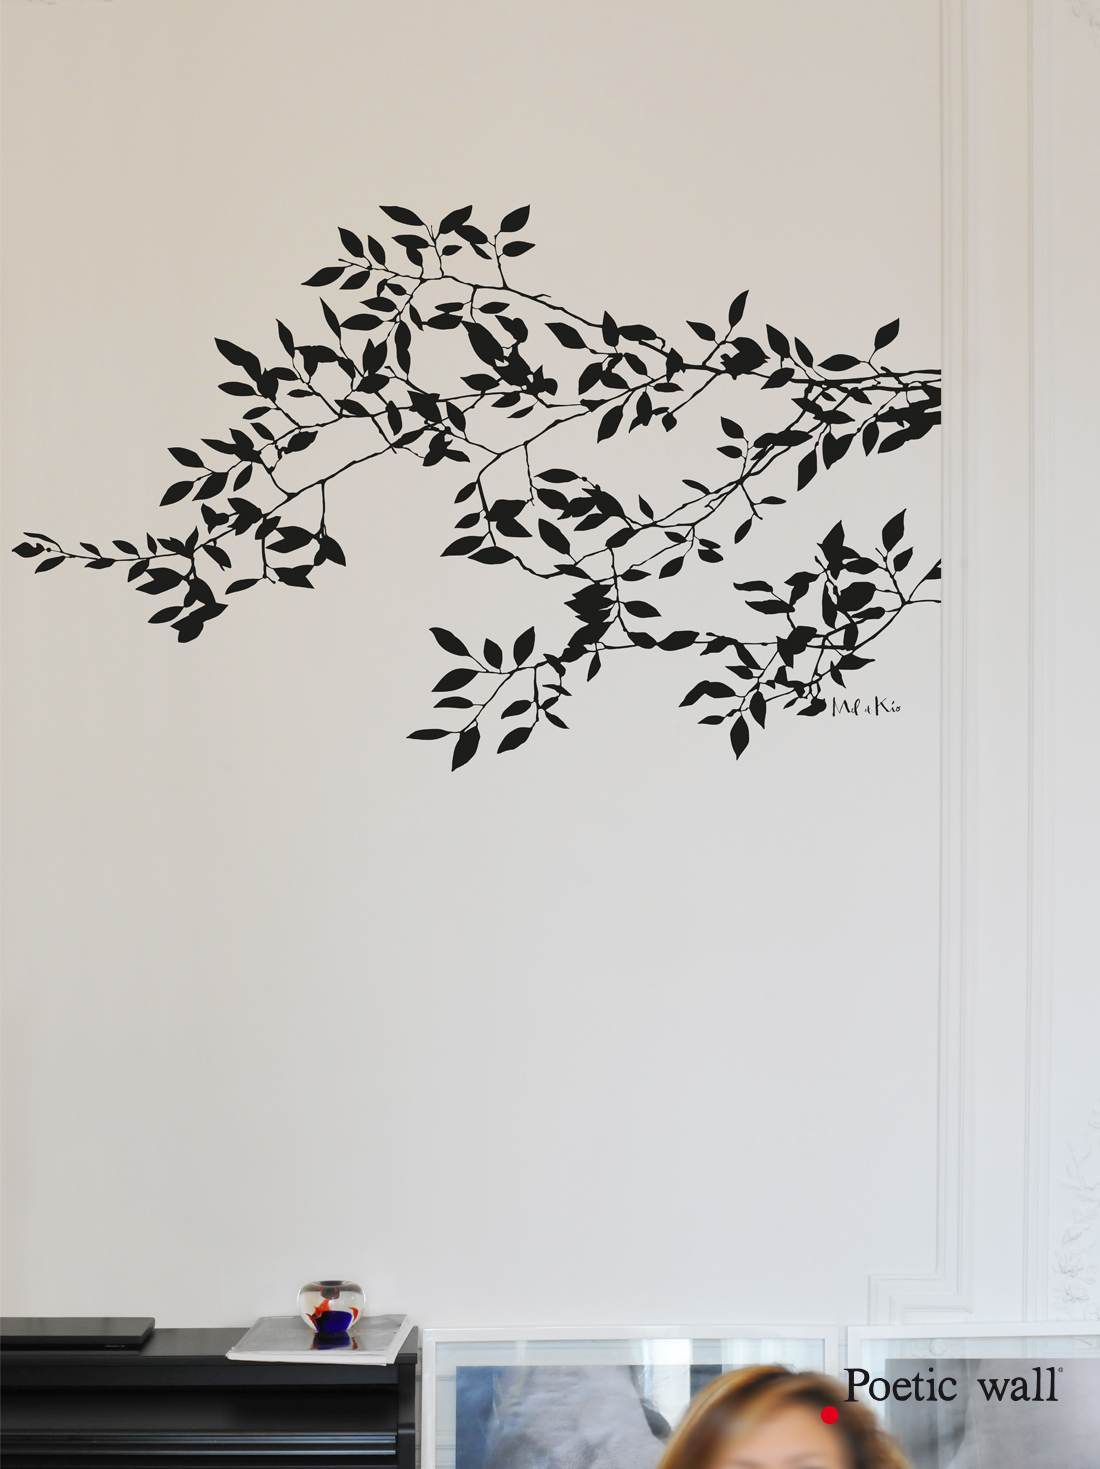 poeticwall-sticker-xxl-murmures-entre-les-feuilles-2